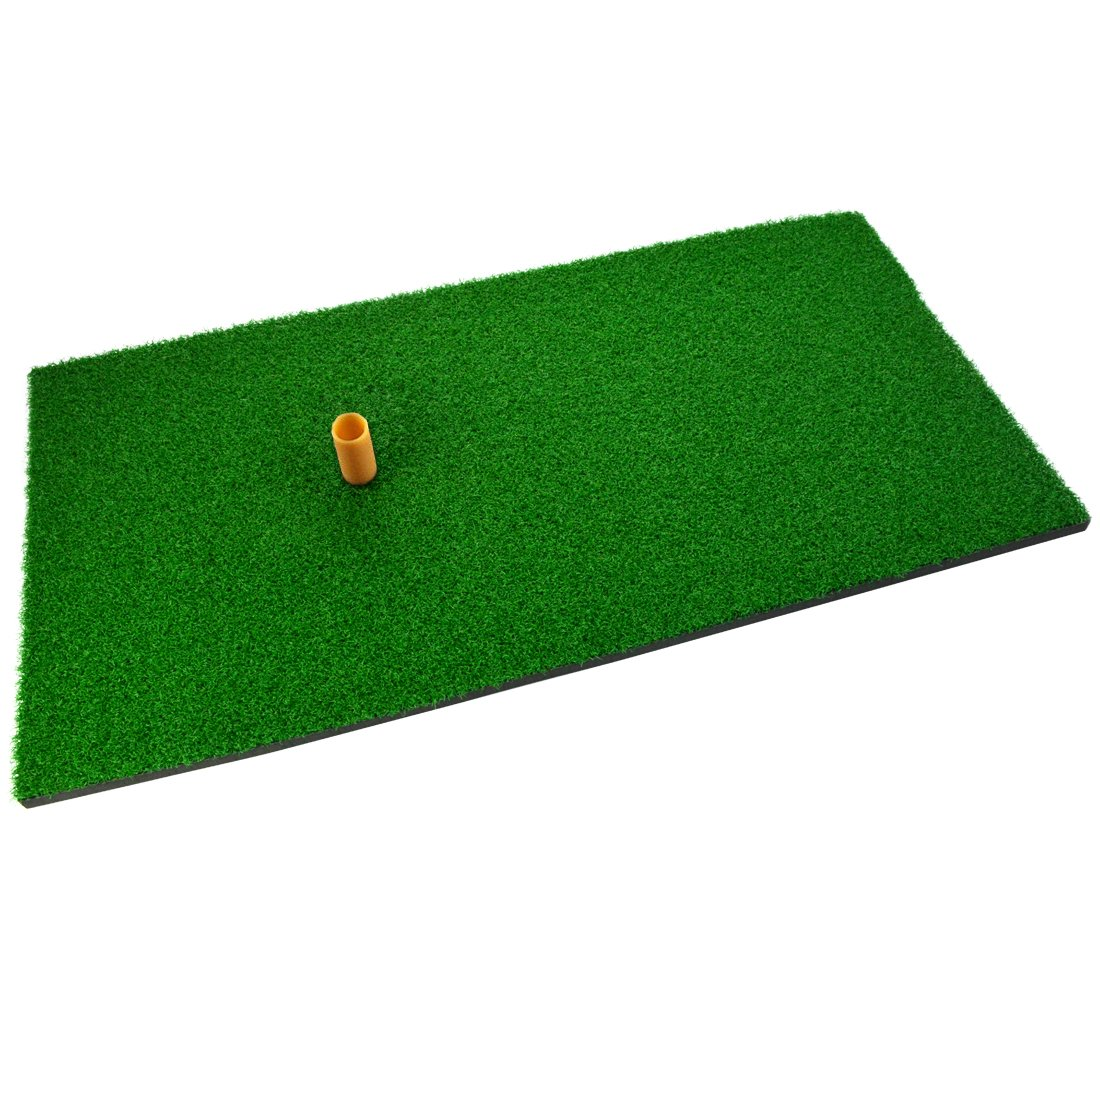 SUMERSHA Golf Mat 12''x24'' Residential Practice Hitting Mat Rubber Tee Holder Realistic Grass Putting Mats Portable Outdoor Sports Golf Training Turf Mat Replacement Indoor Office Equipment